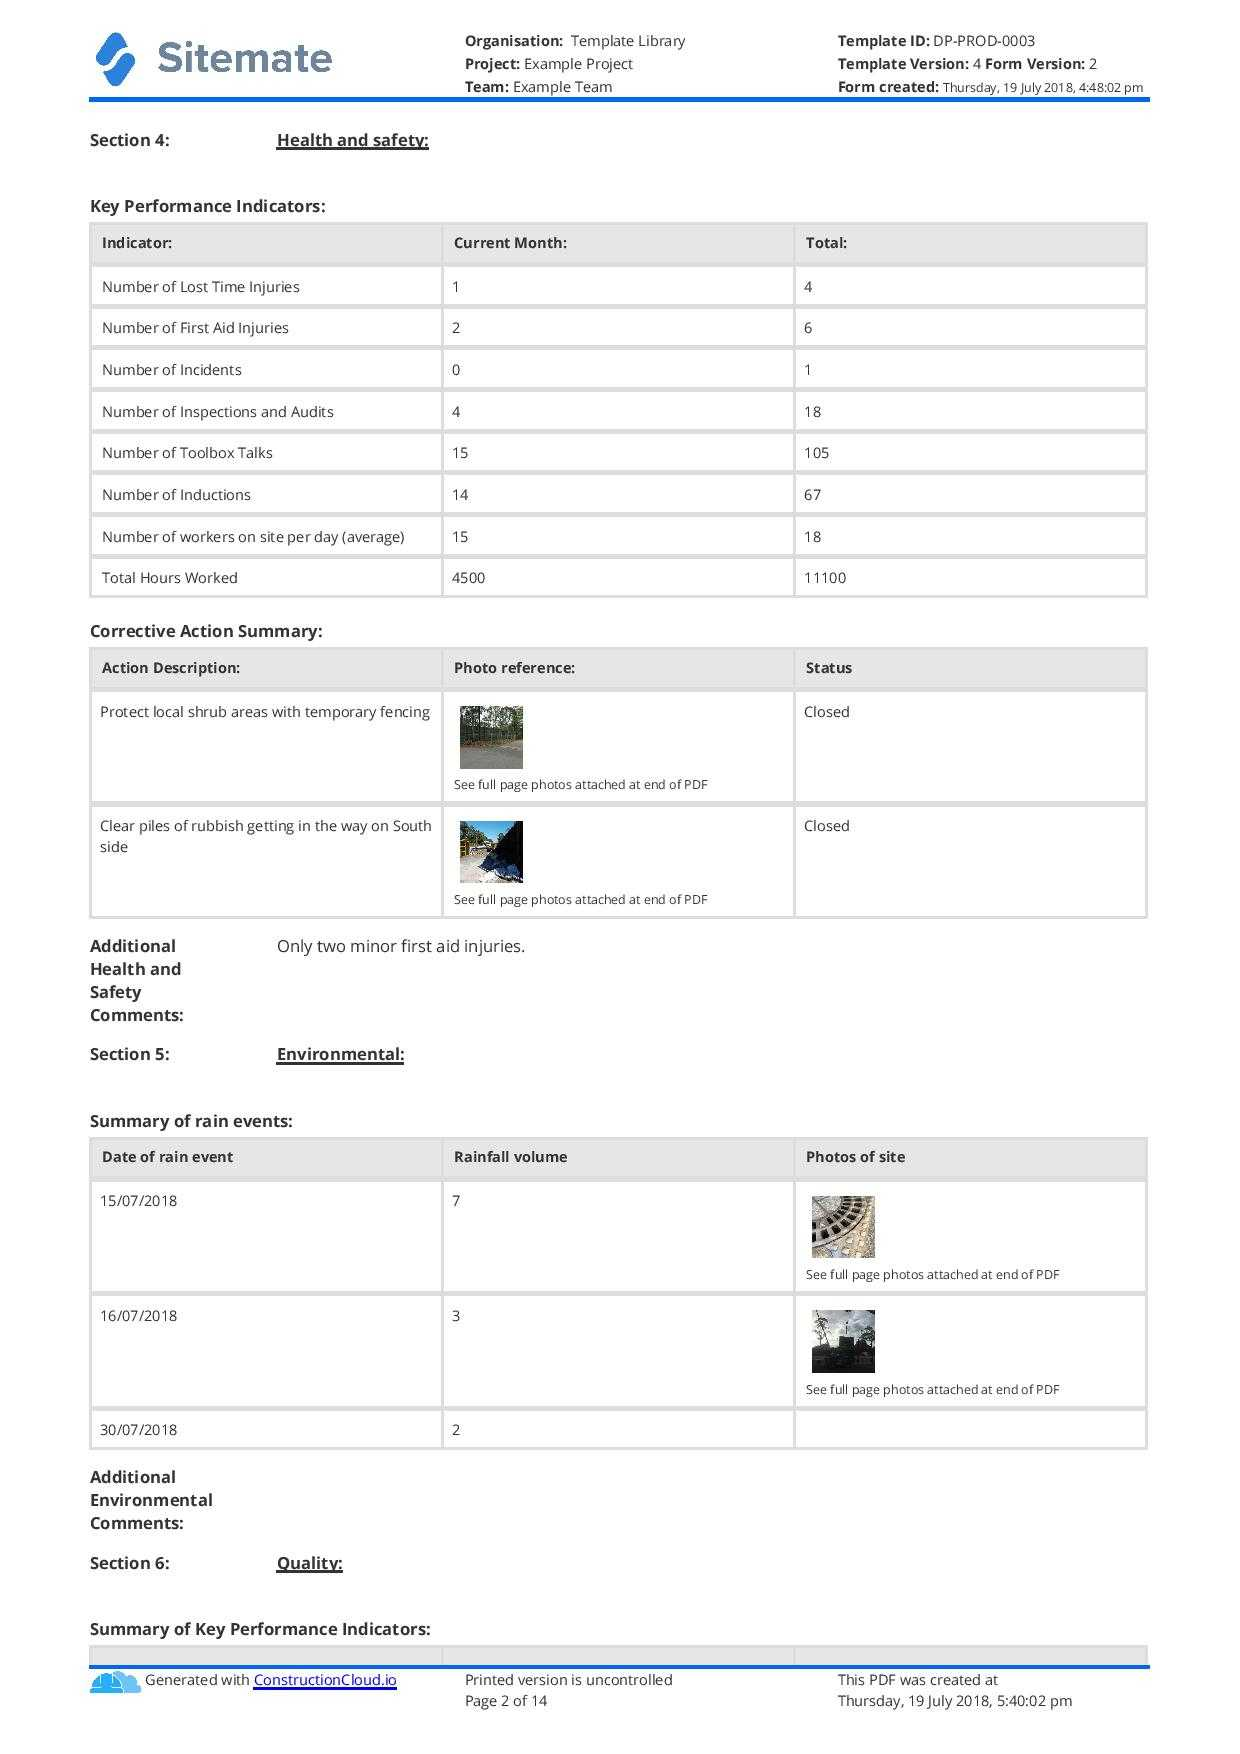 Monthly Construction Progress Report Template: Use This in Monthly Health And Safety Report Template